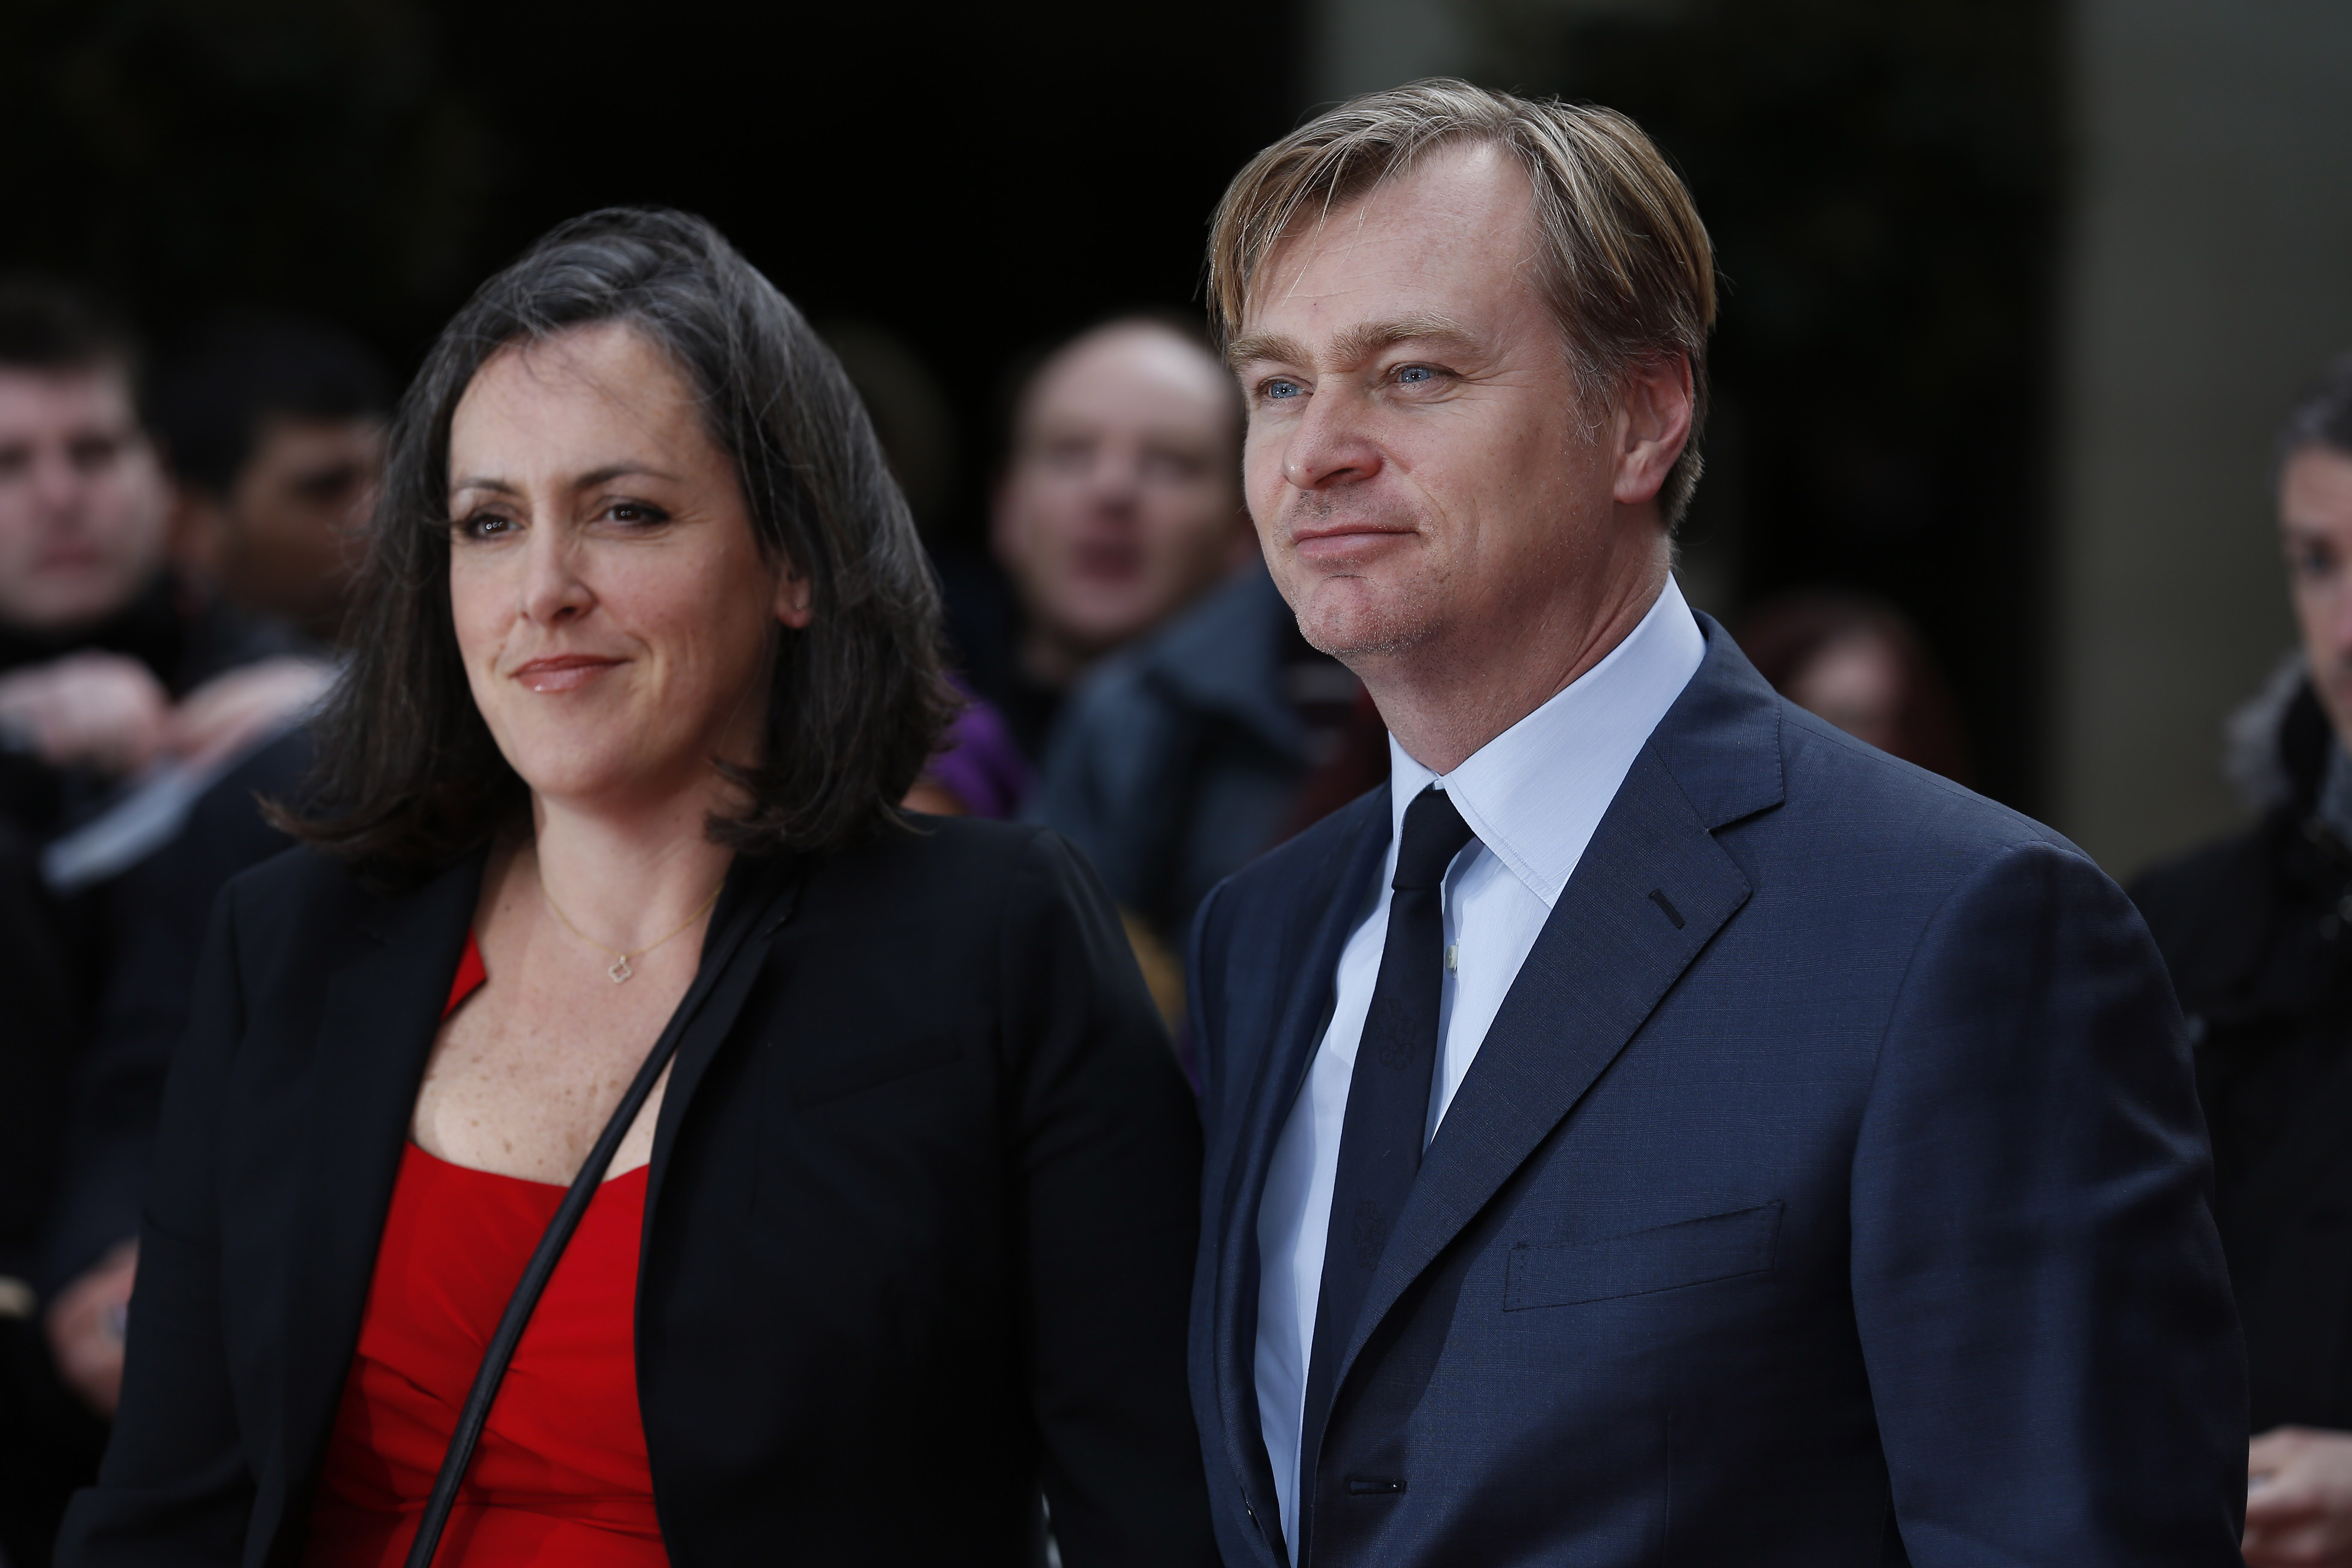 British director Christopher Nolan (R) and his wife, British film producer Emma Thomas pose for photographers as they arrive for the 2015 Empire Awards in central London on Mar. 29, 2015.